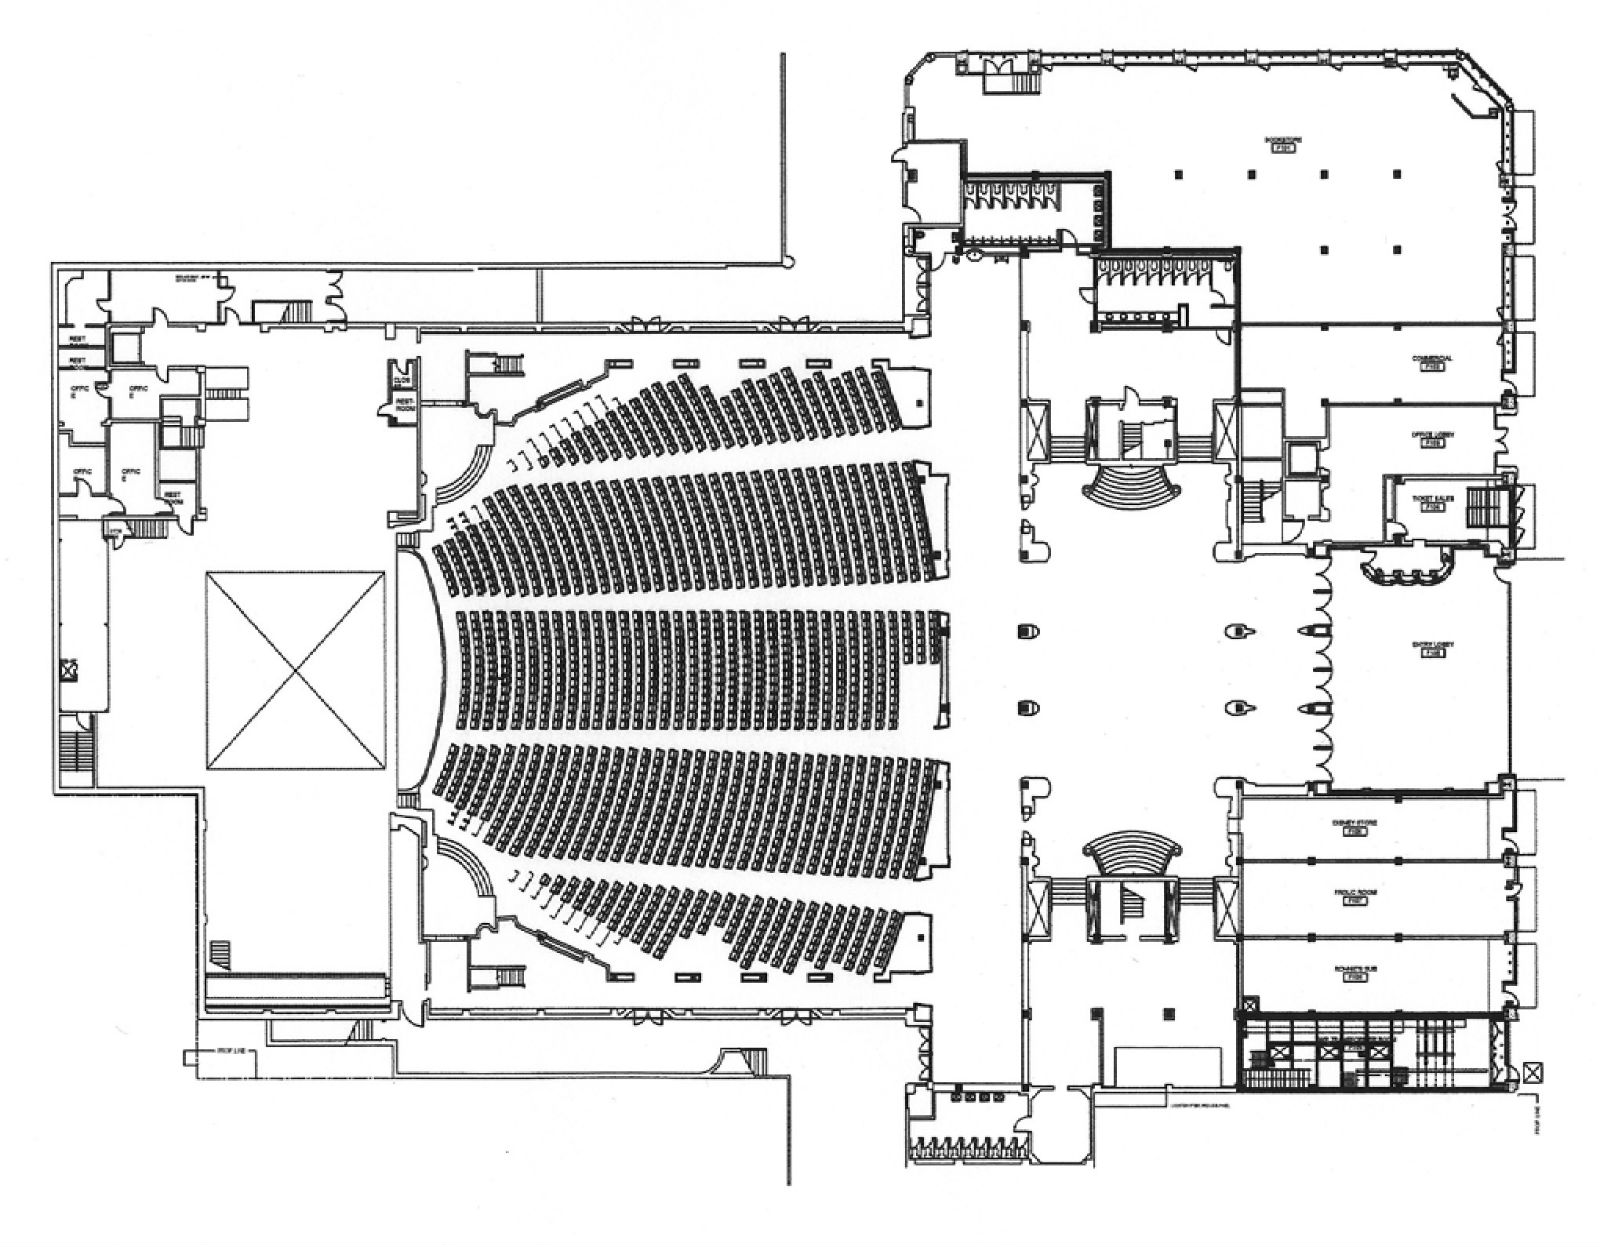 The main floor plan of the Pantages Thanks to Mike Hume for the copy of this plan and the ones below all featured in the Pantages Theatre section of his